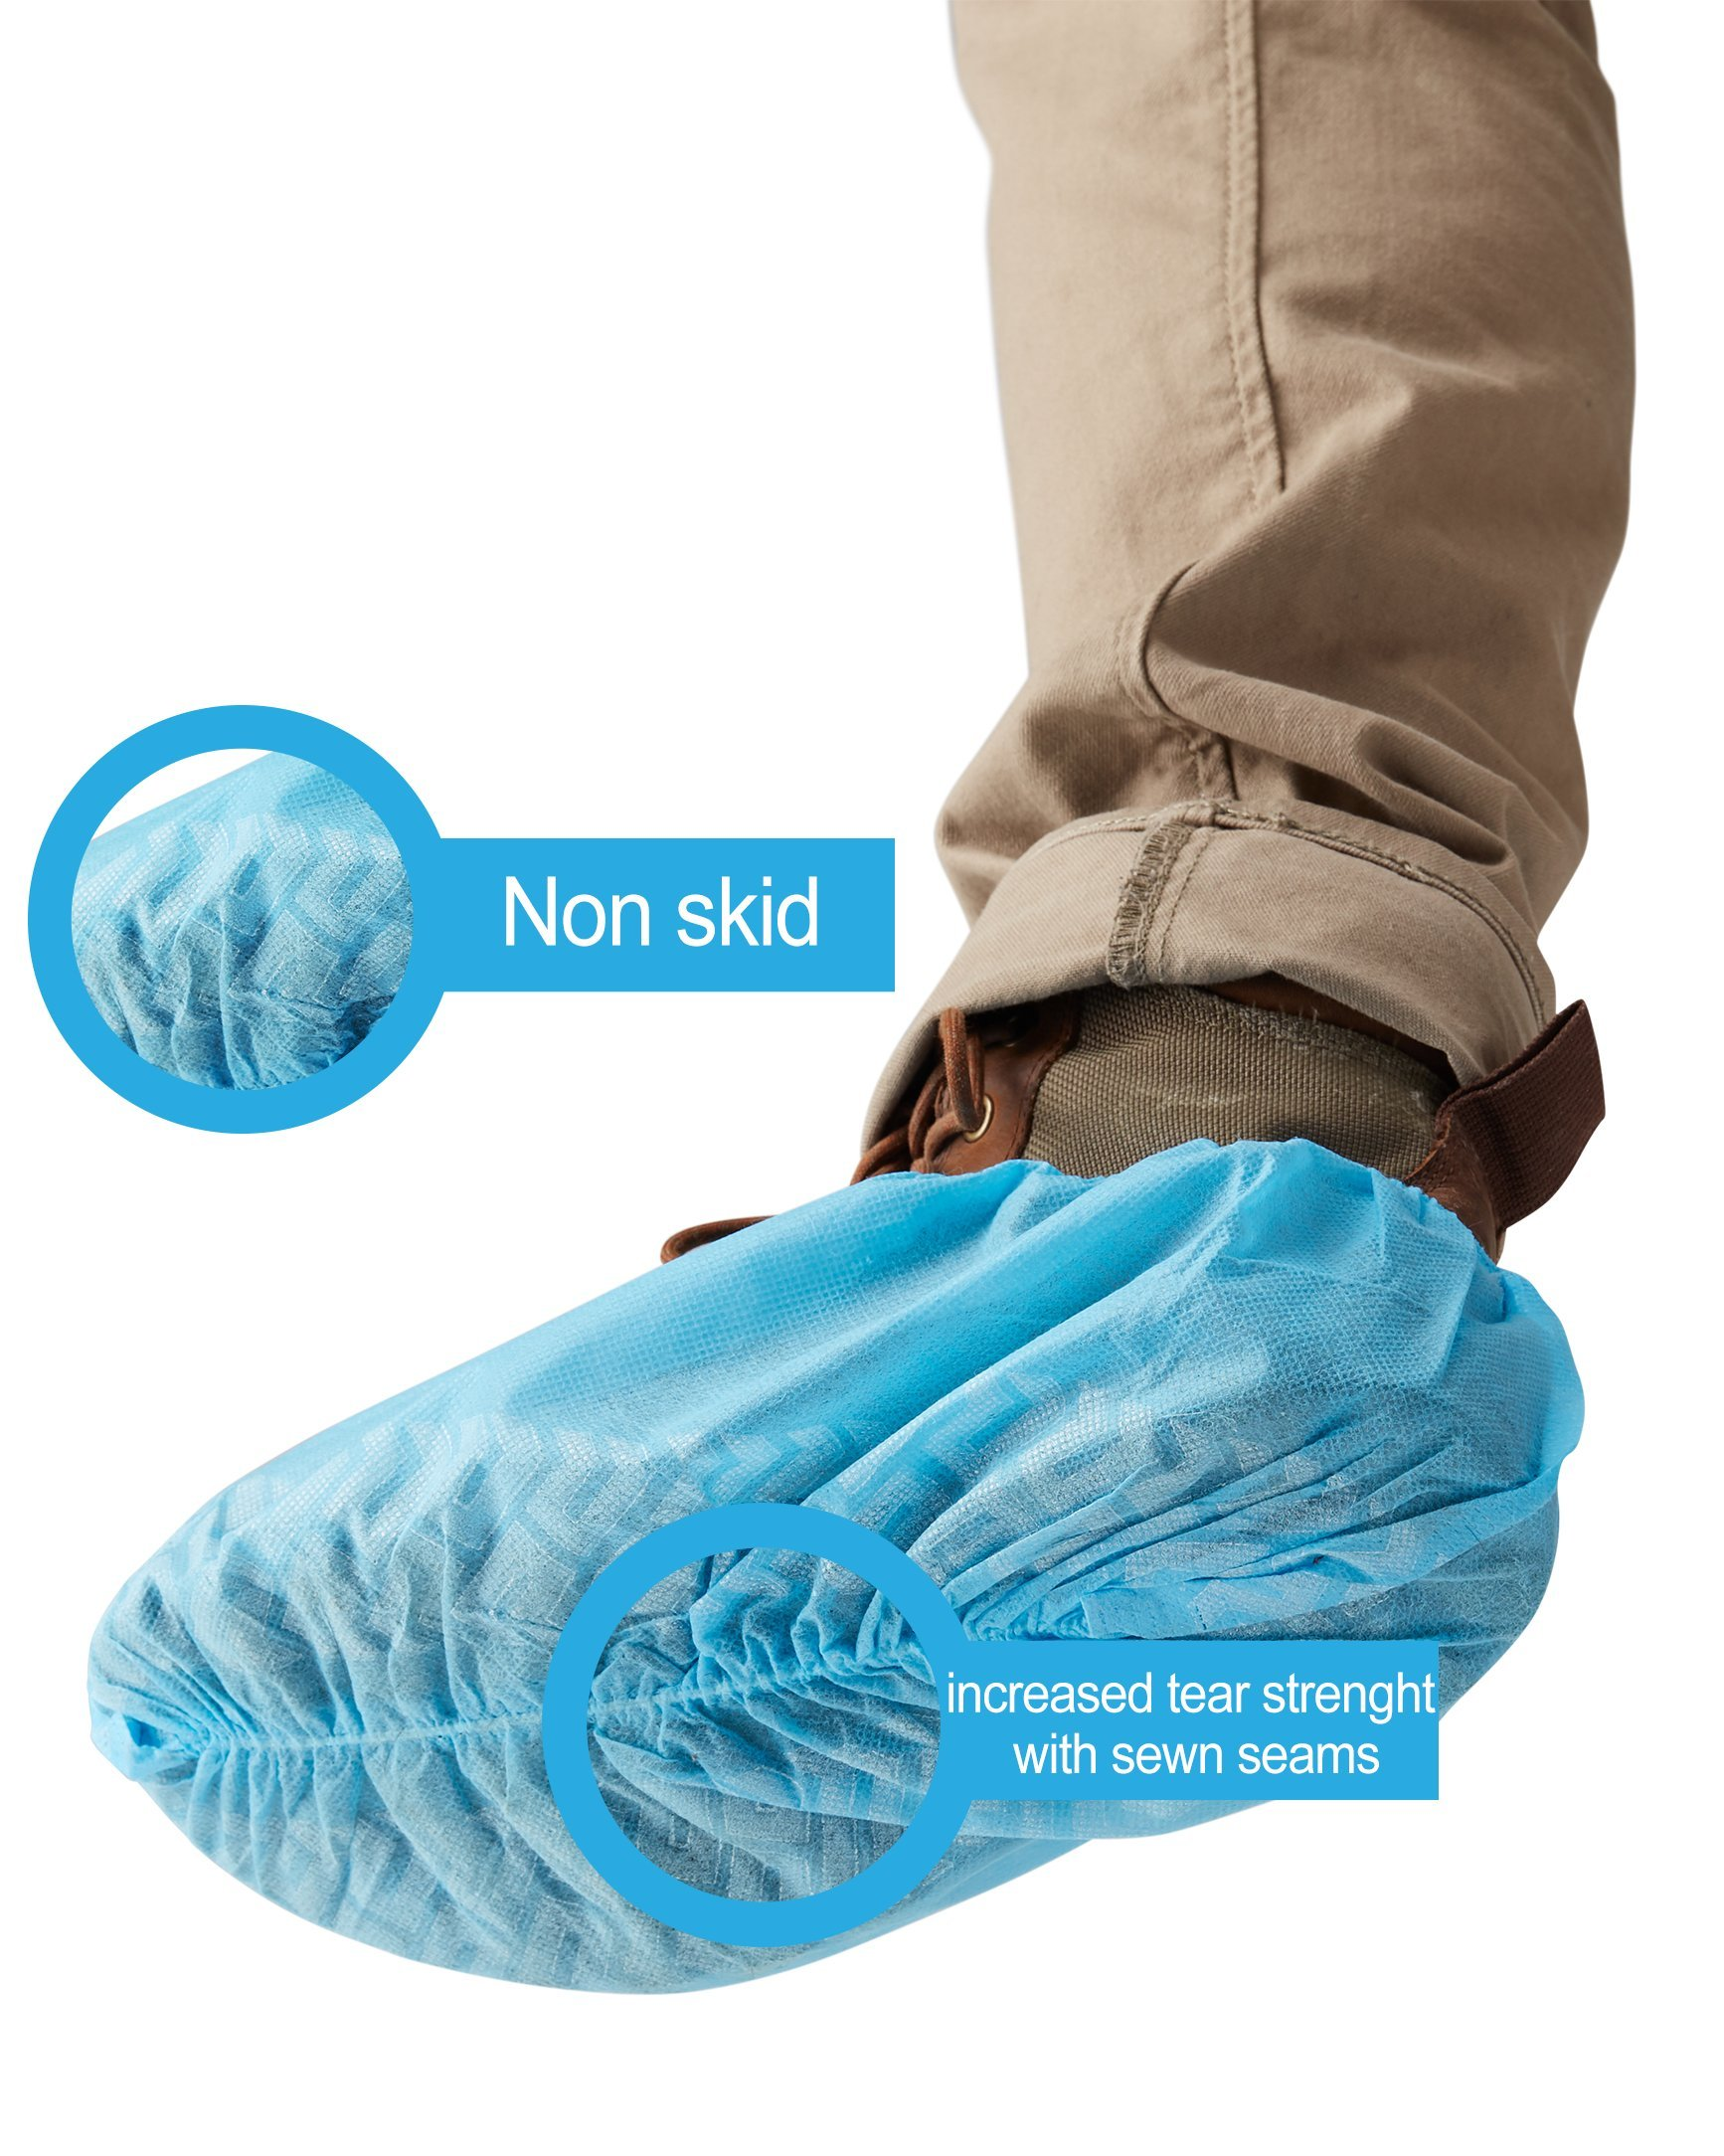 SafeBasics Non Skid Disposable Shoe Covers, Durable, Water Resistant, One Size Fits Most (100) by SafeBasics by AMD Medicom (Image #5)